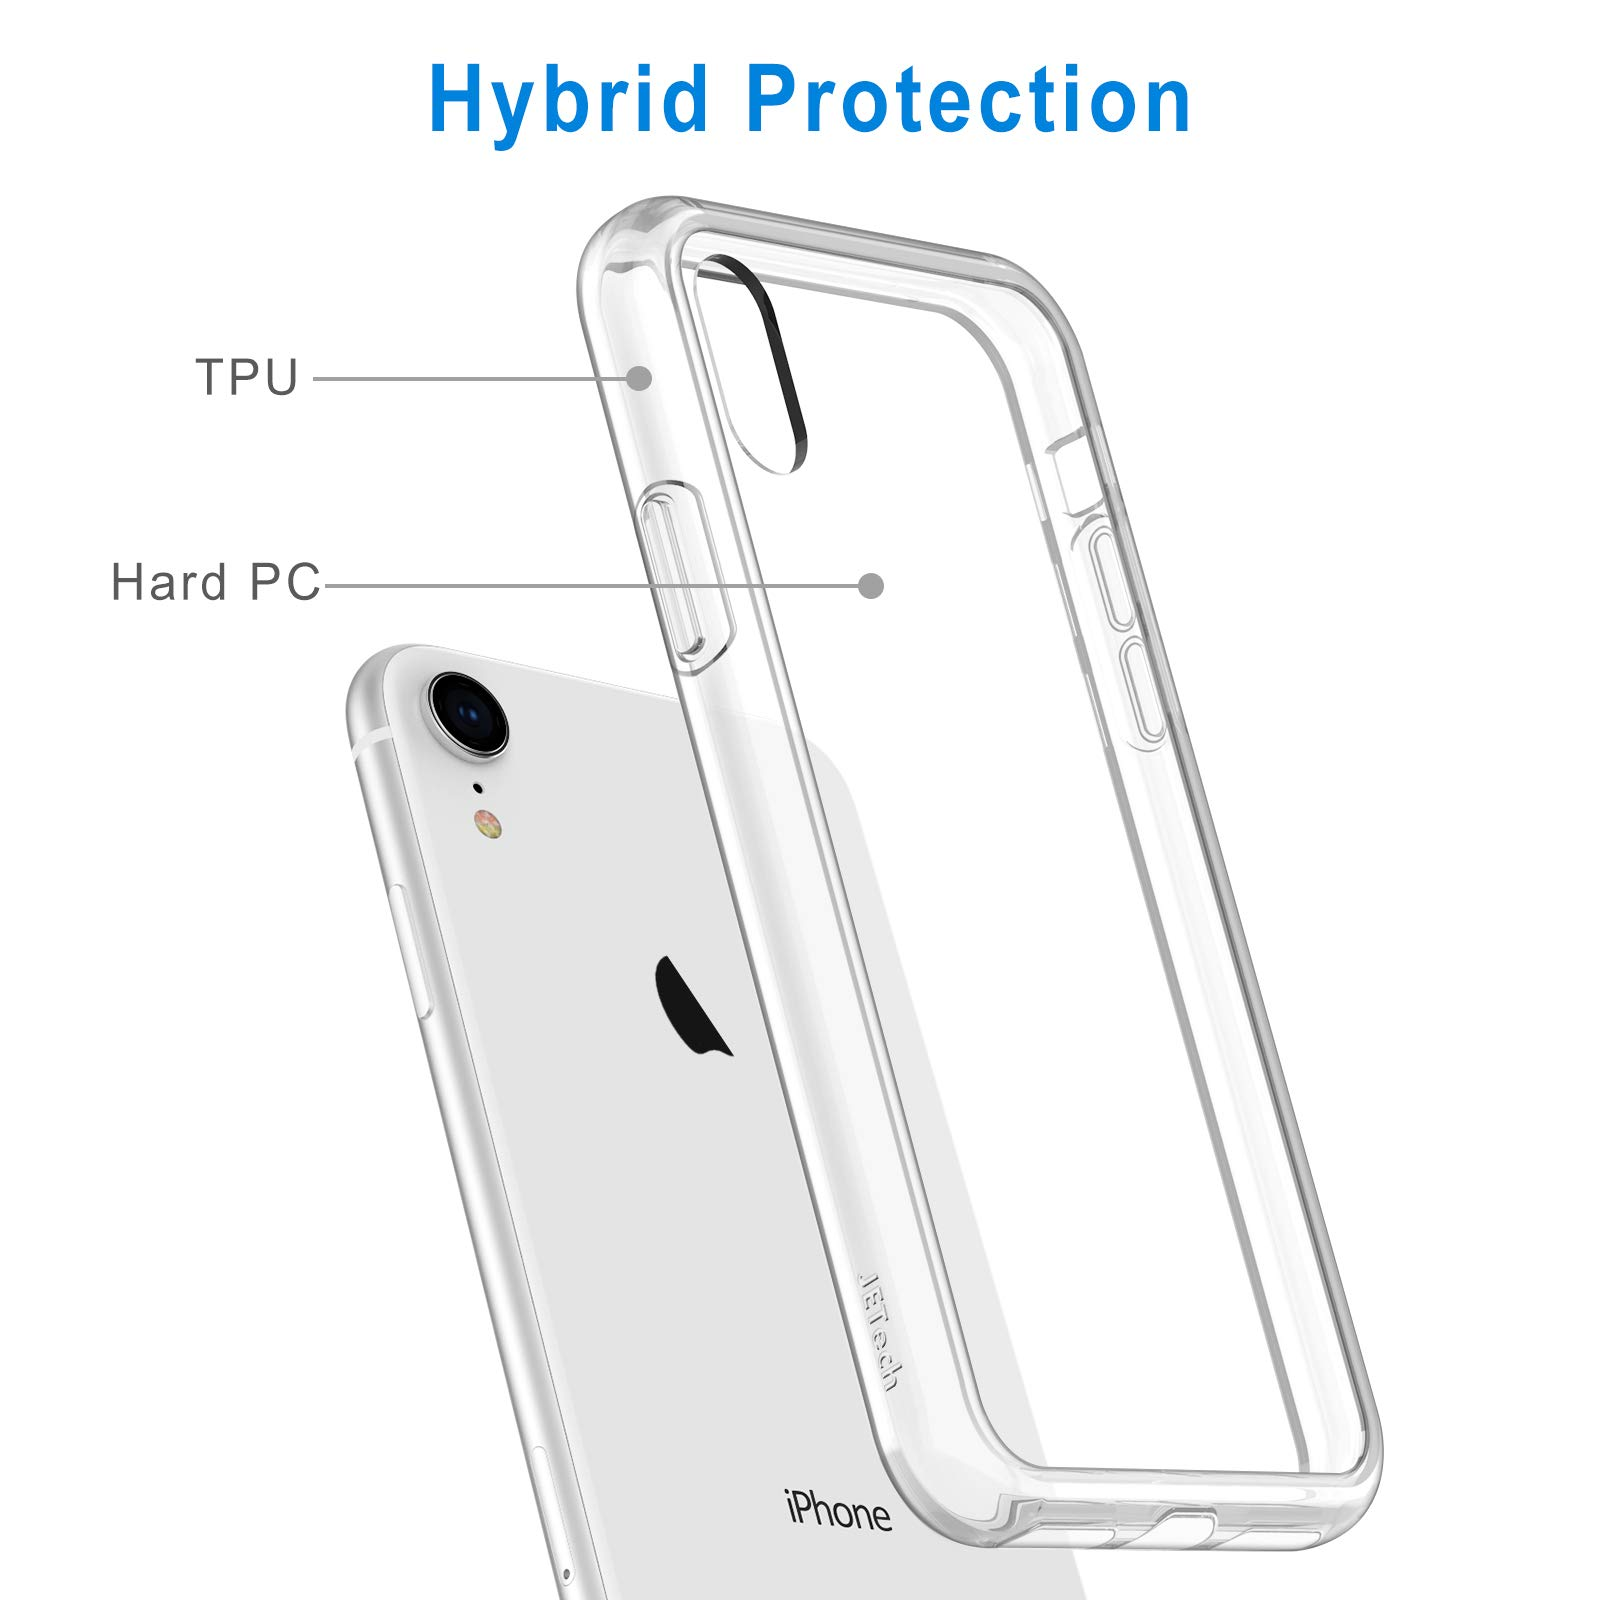 JETech Case for iPhone XR 6.1-Inch, Shockproof Transparent Bumper Cover, HD Clear